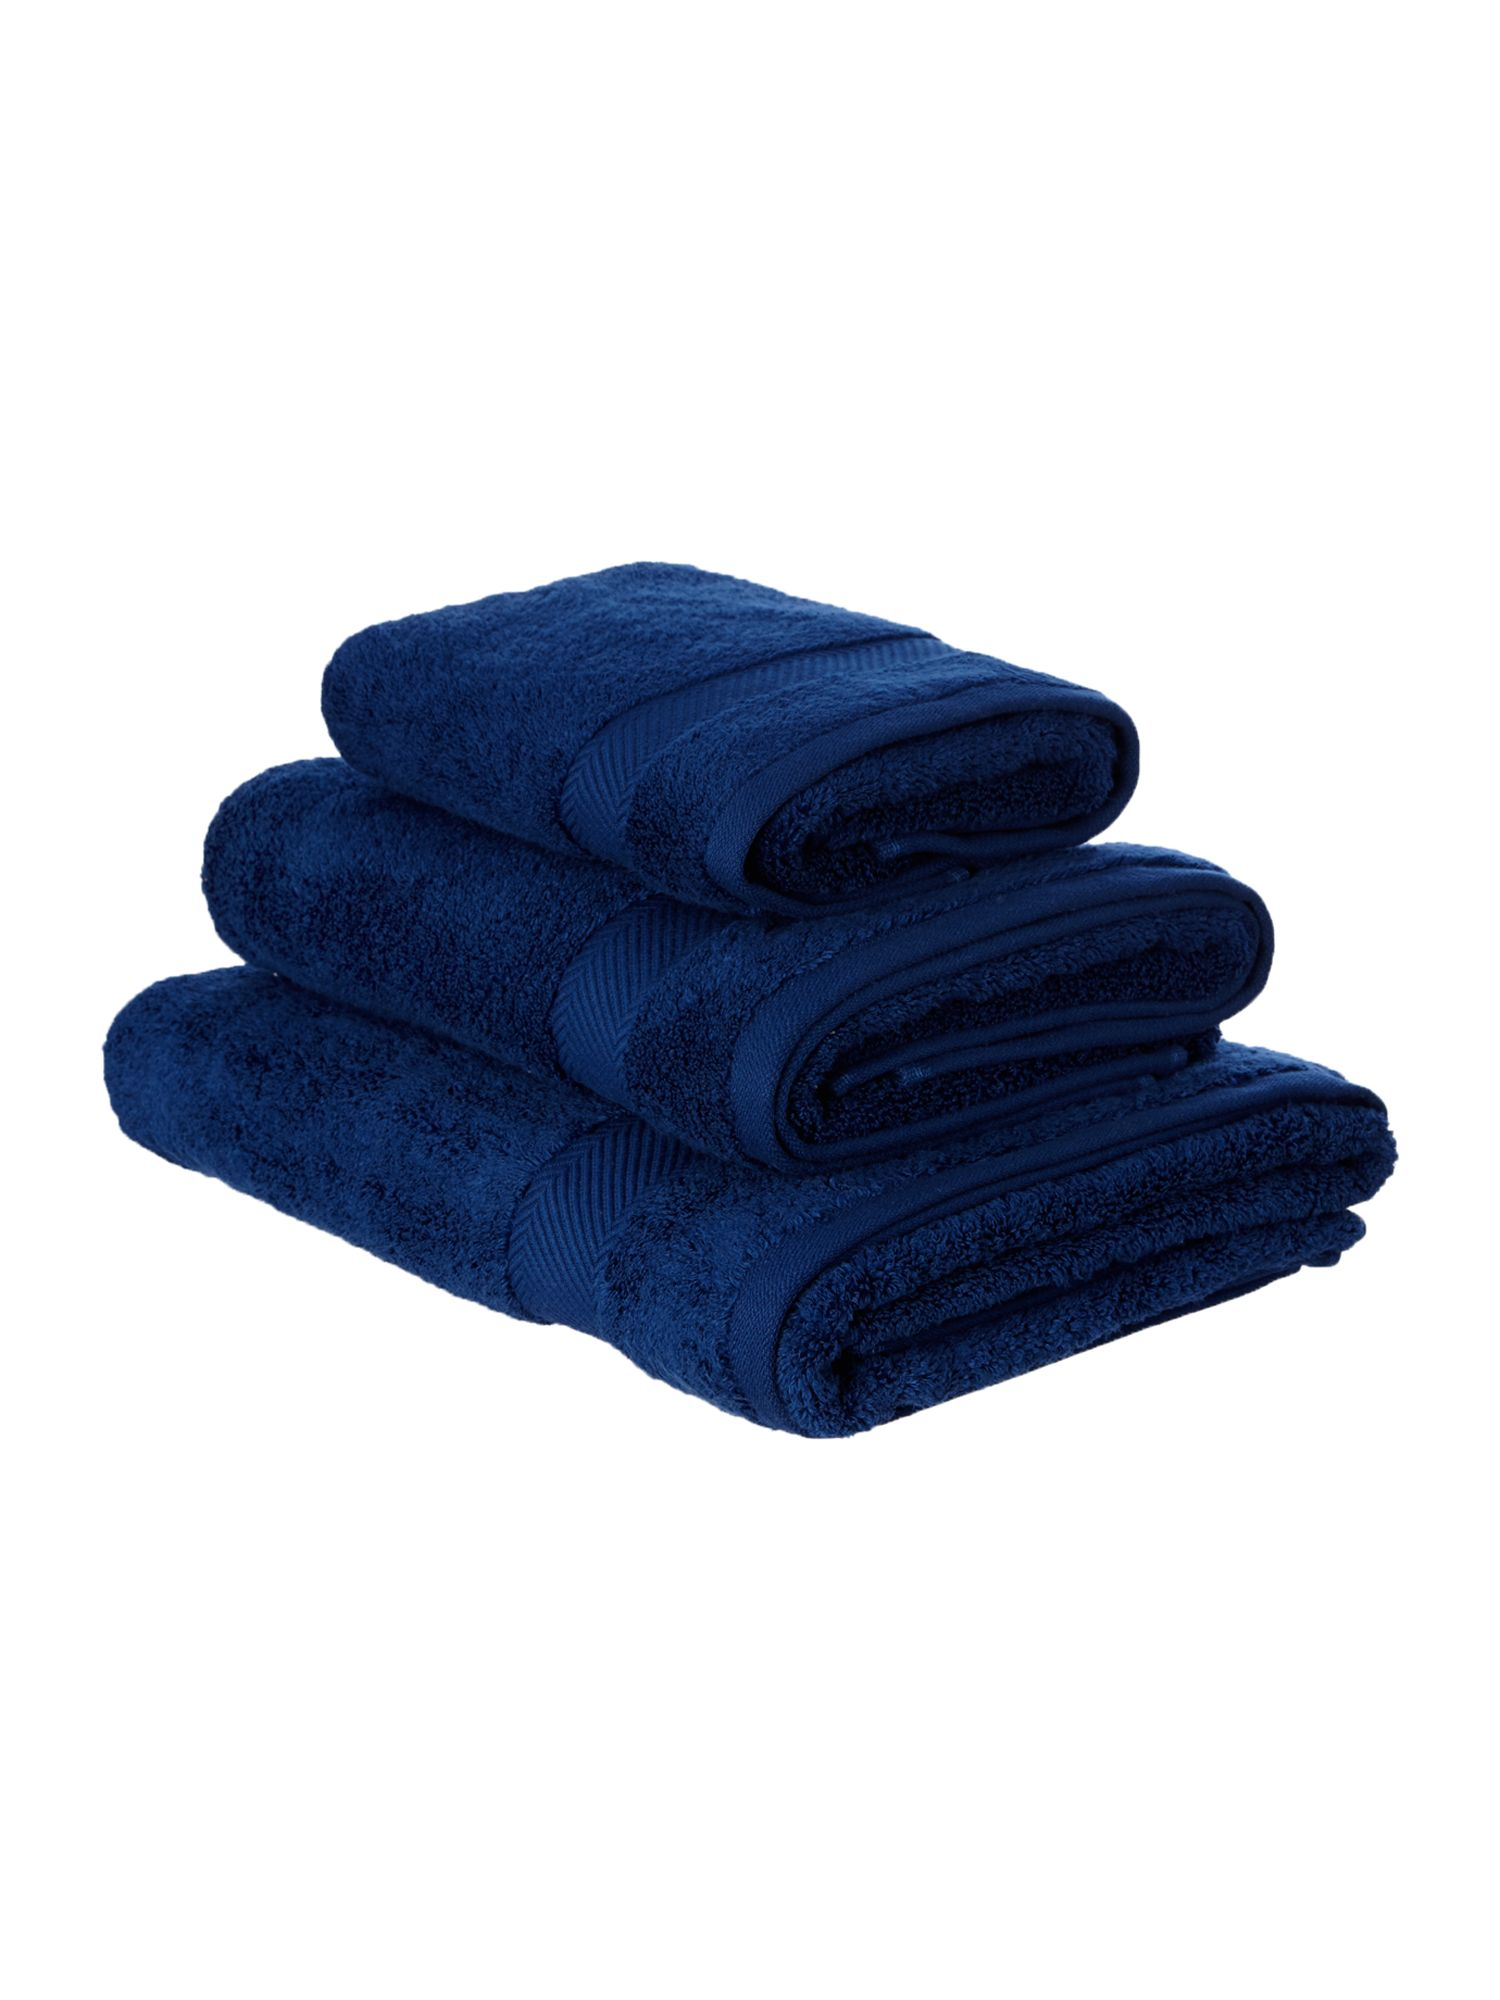 Zero twist navy towels